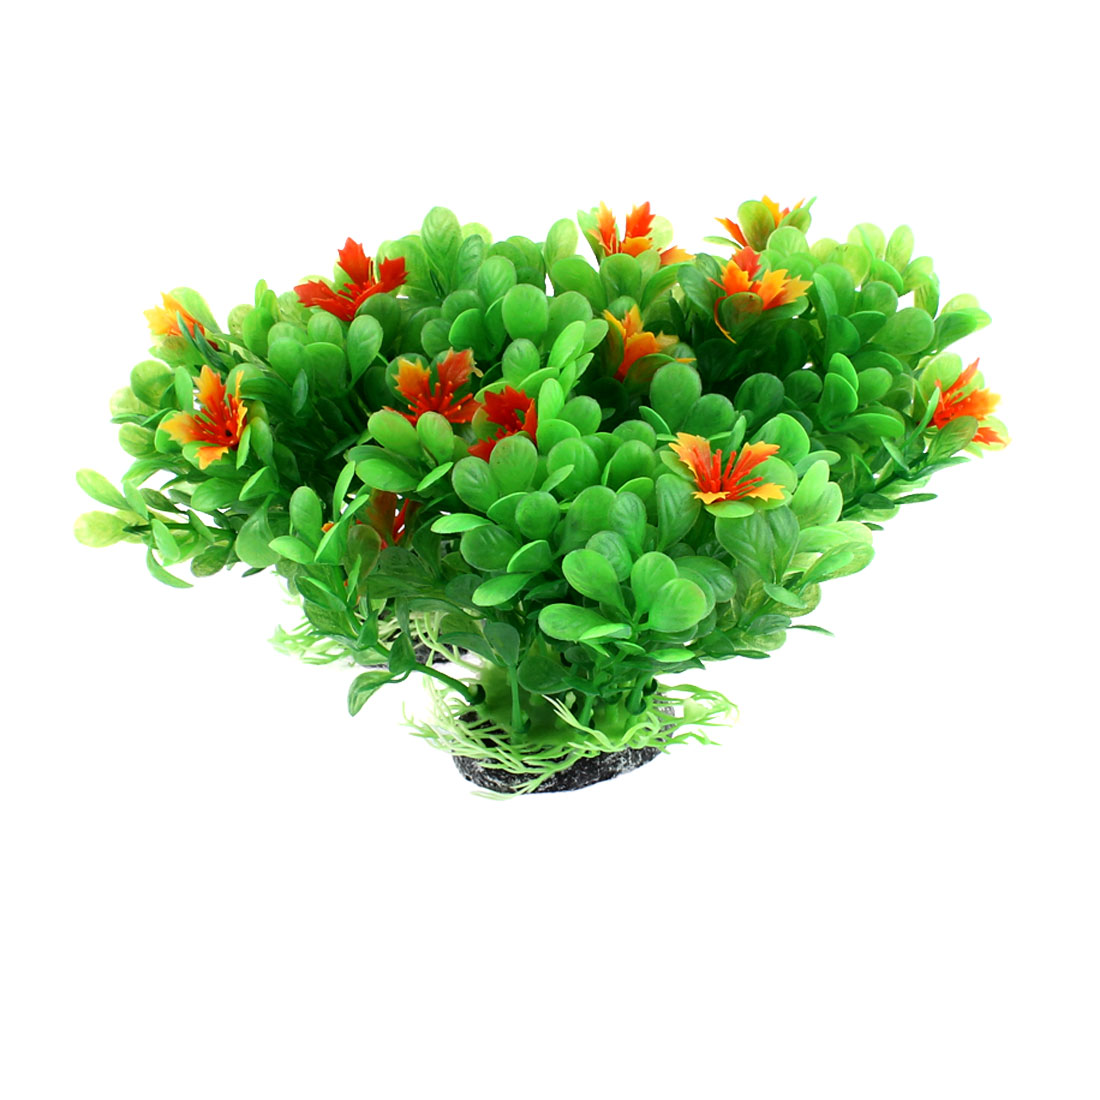 Aquarium Fish Tank Imitated Landscape Plant Grass Decor Green 3pcs